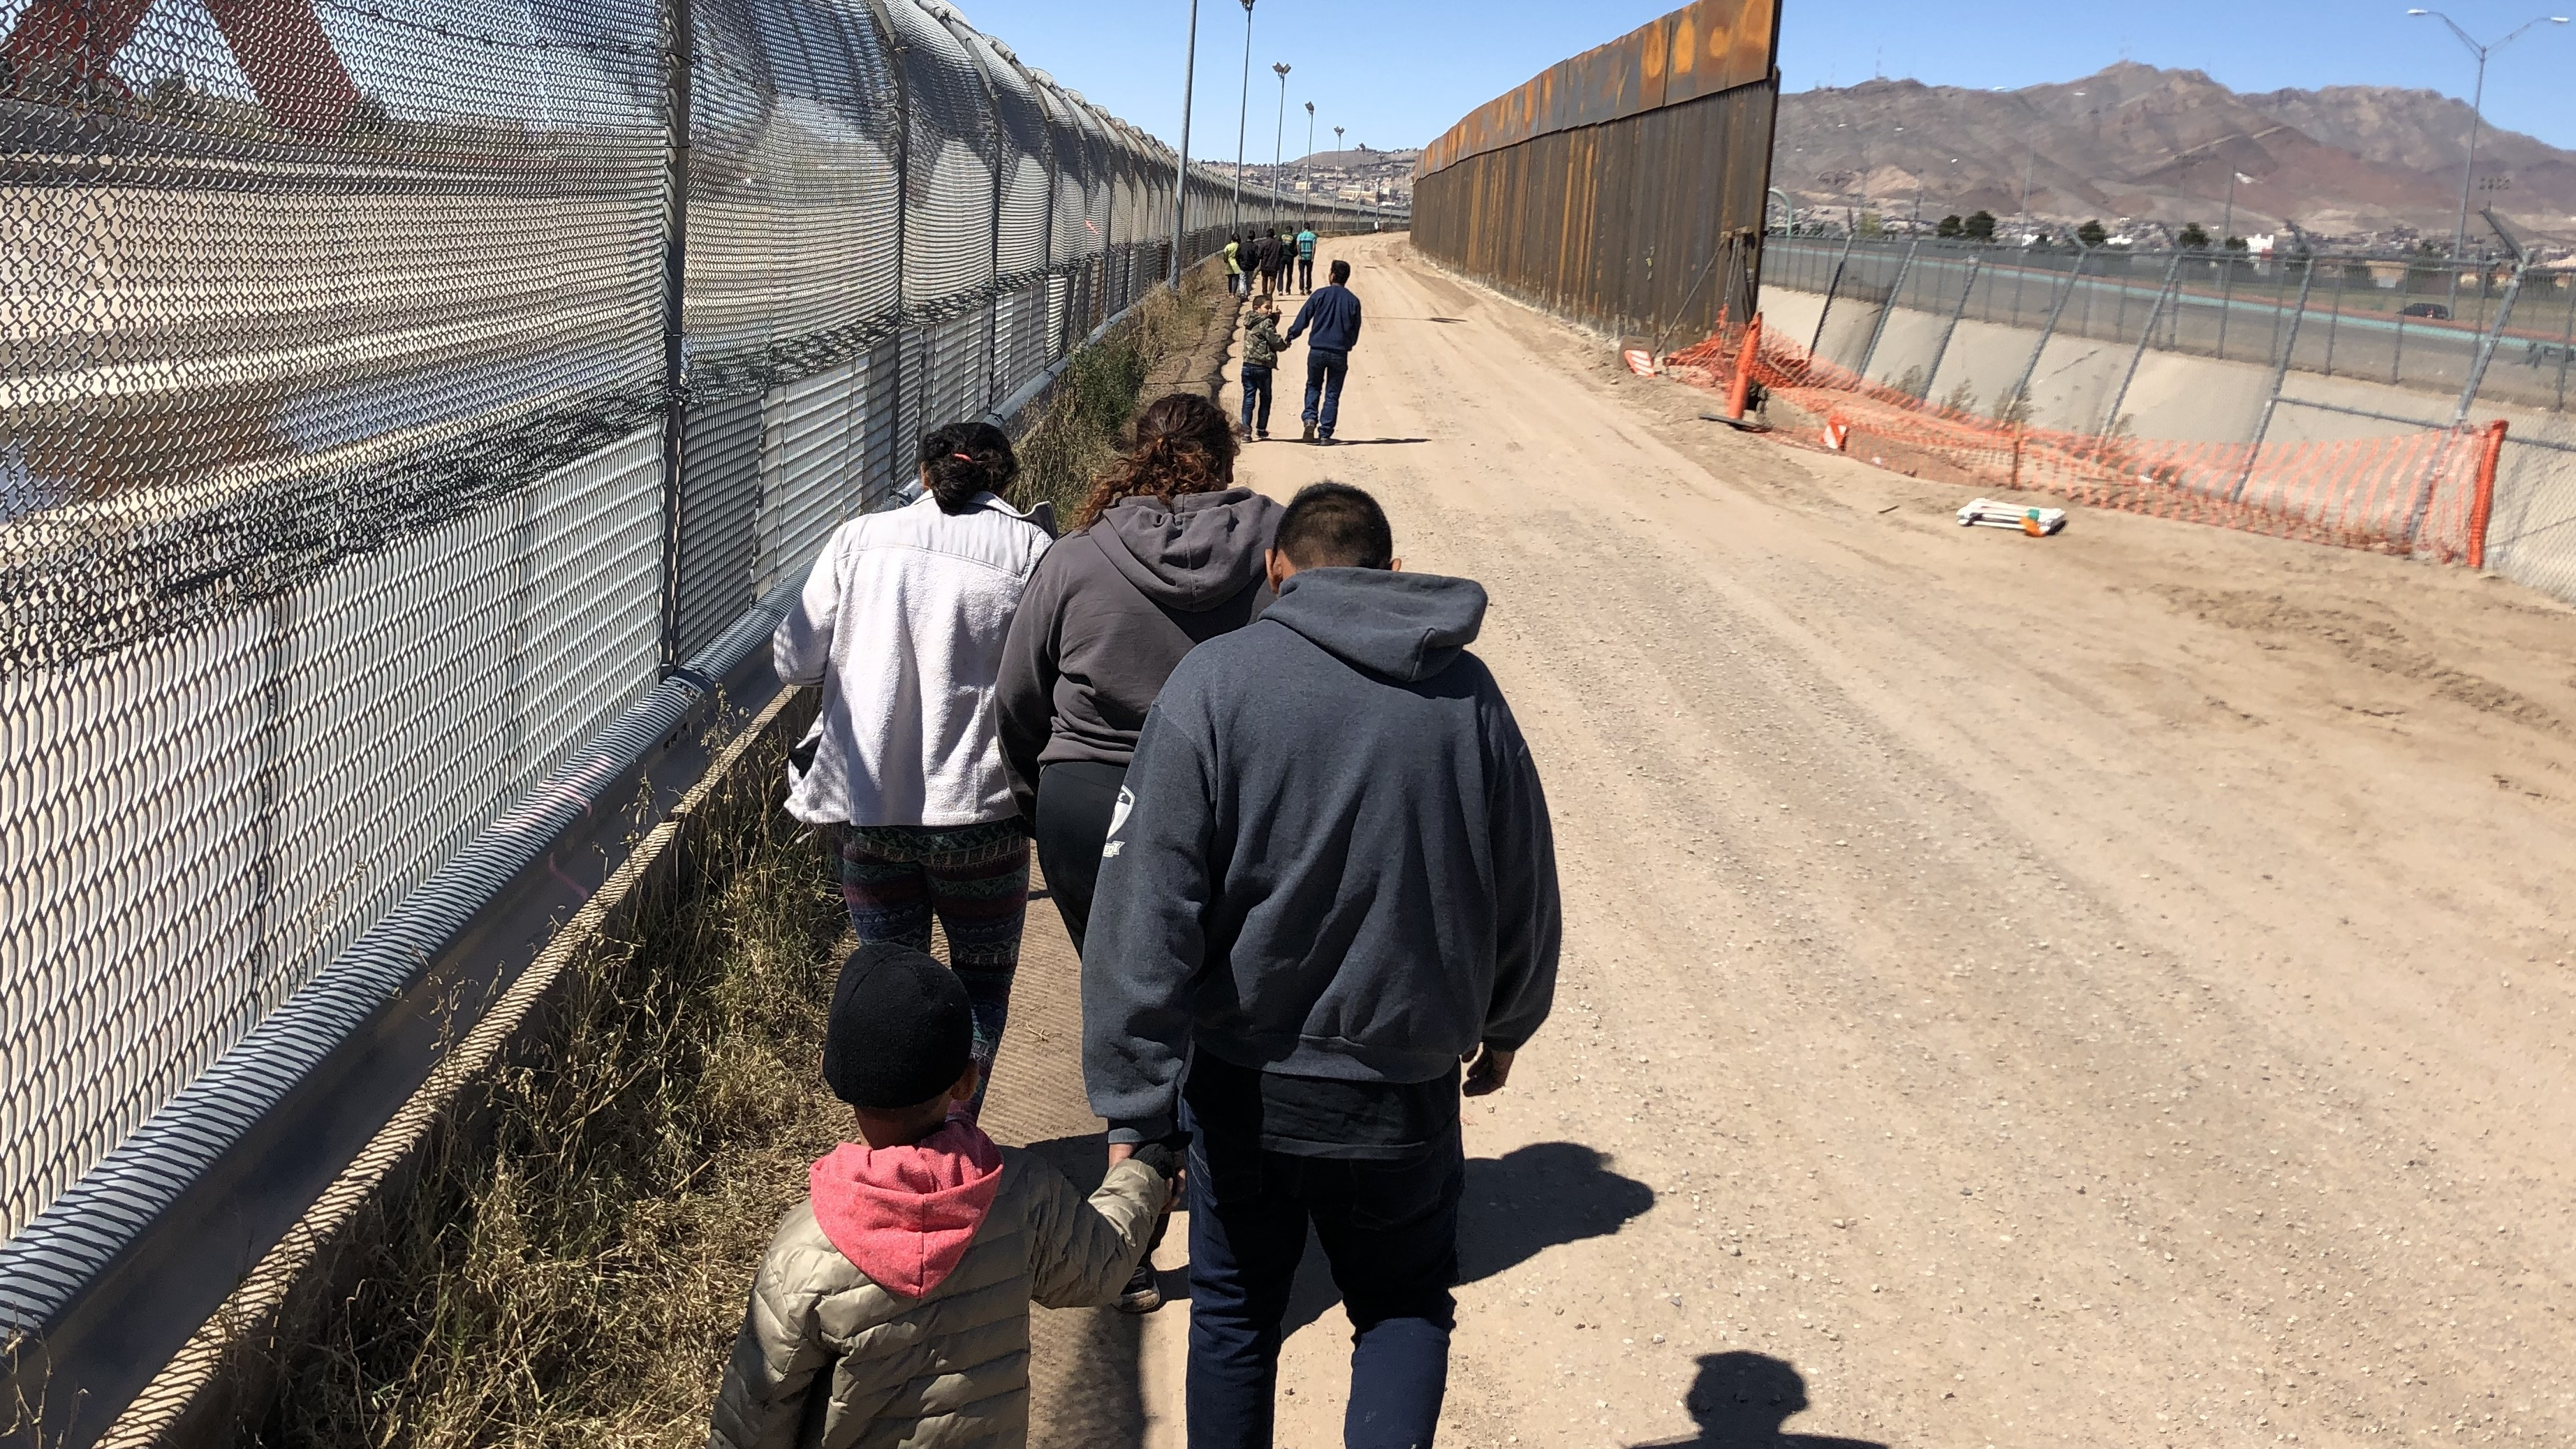 A Surge Of Migrants Strains Border Patrol As El Paso Becomes Latest Hot Spot